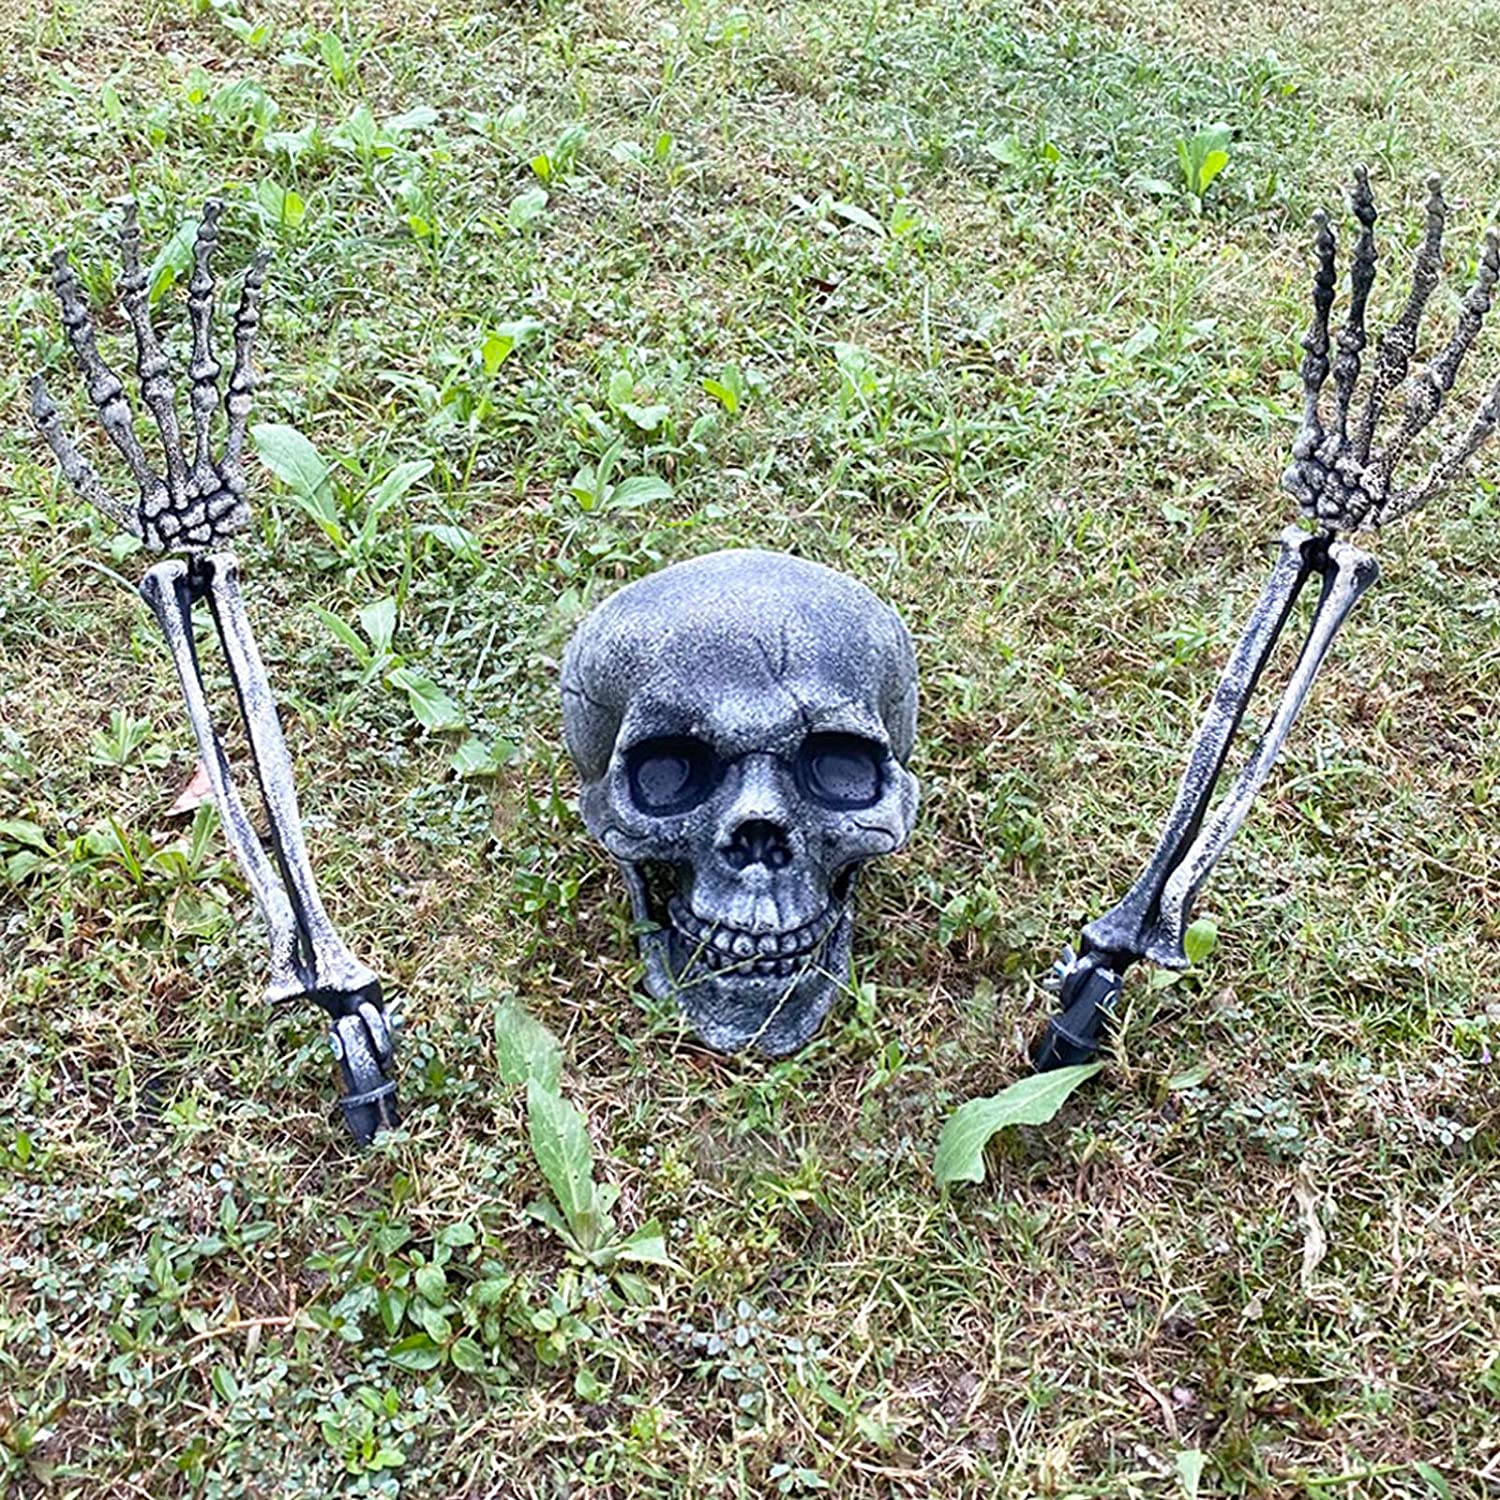 CHICHIC Realistic Looking Skeleton Stakes, Garden Graveyard Yard Lawn Stakes, Halloween Yard Decorations, Ground Breaker Skeleton for Best Outdoor Halloween Decorations Halloween Décor: Garden & Outdoor